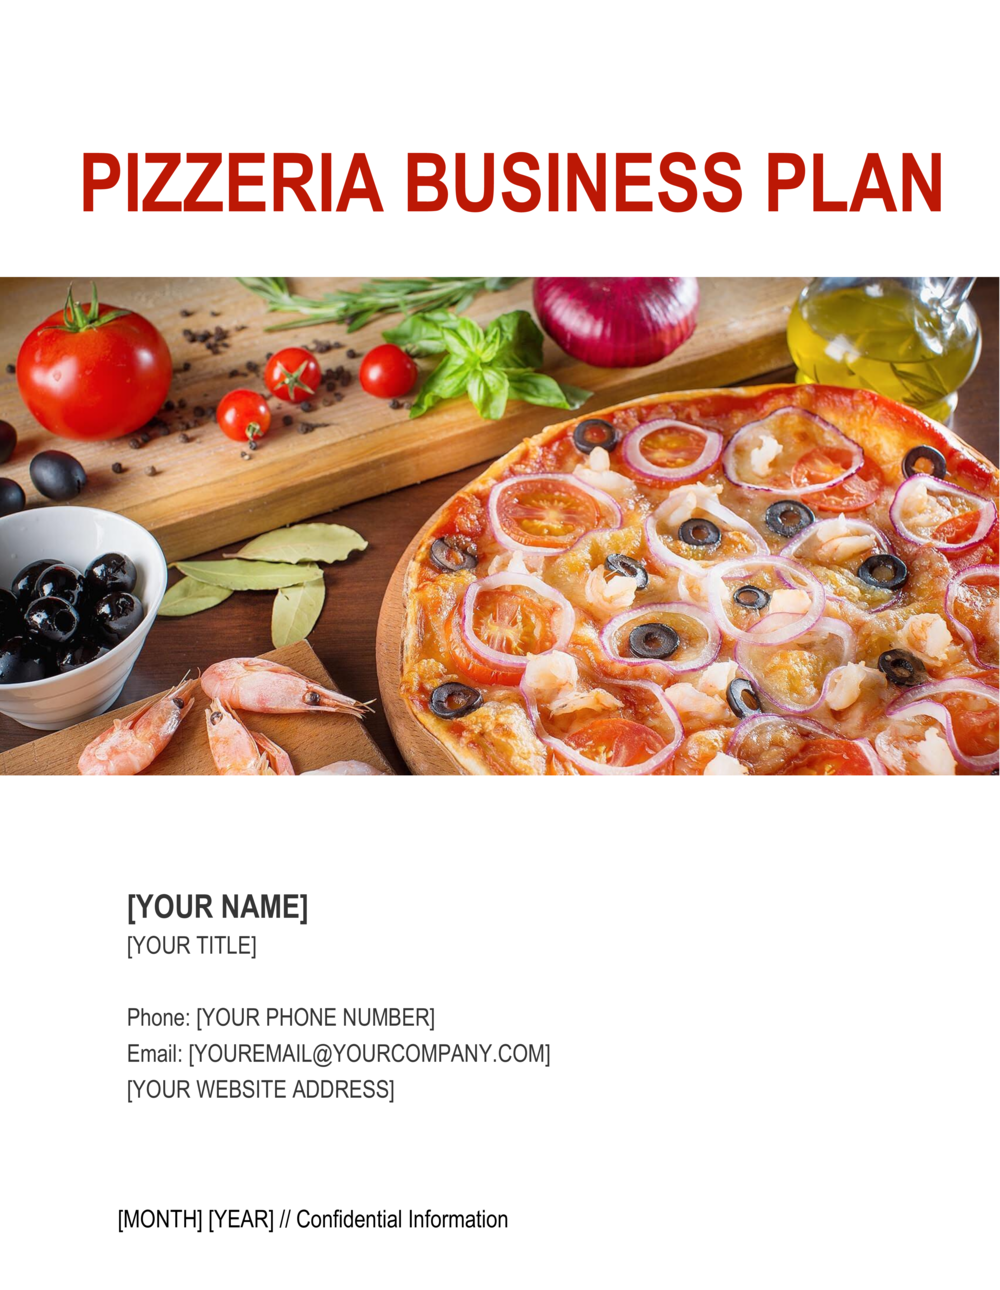 Business-in-a-Box's Pizzeria Business Plan Template